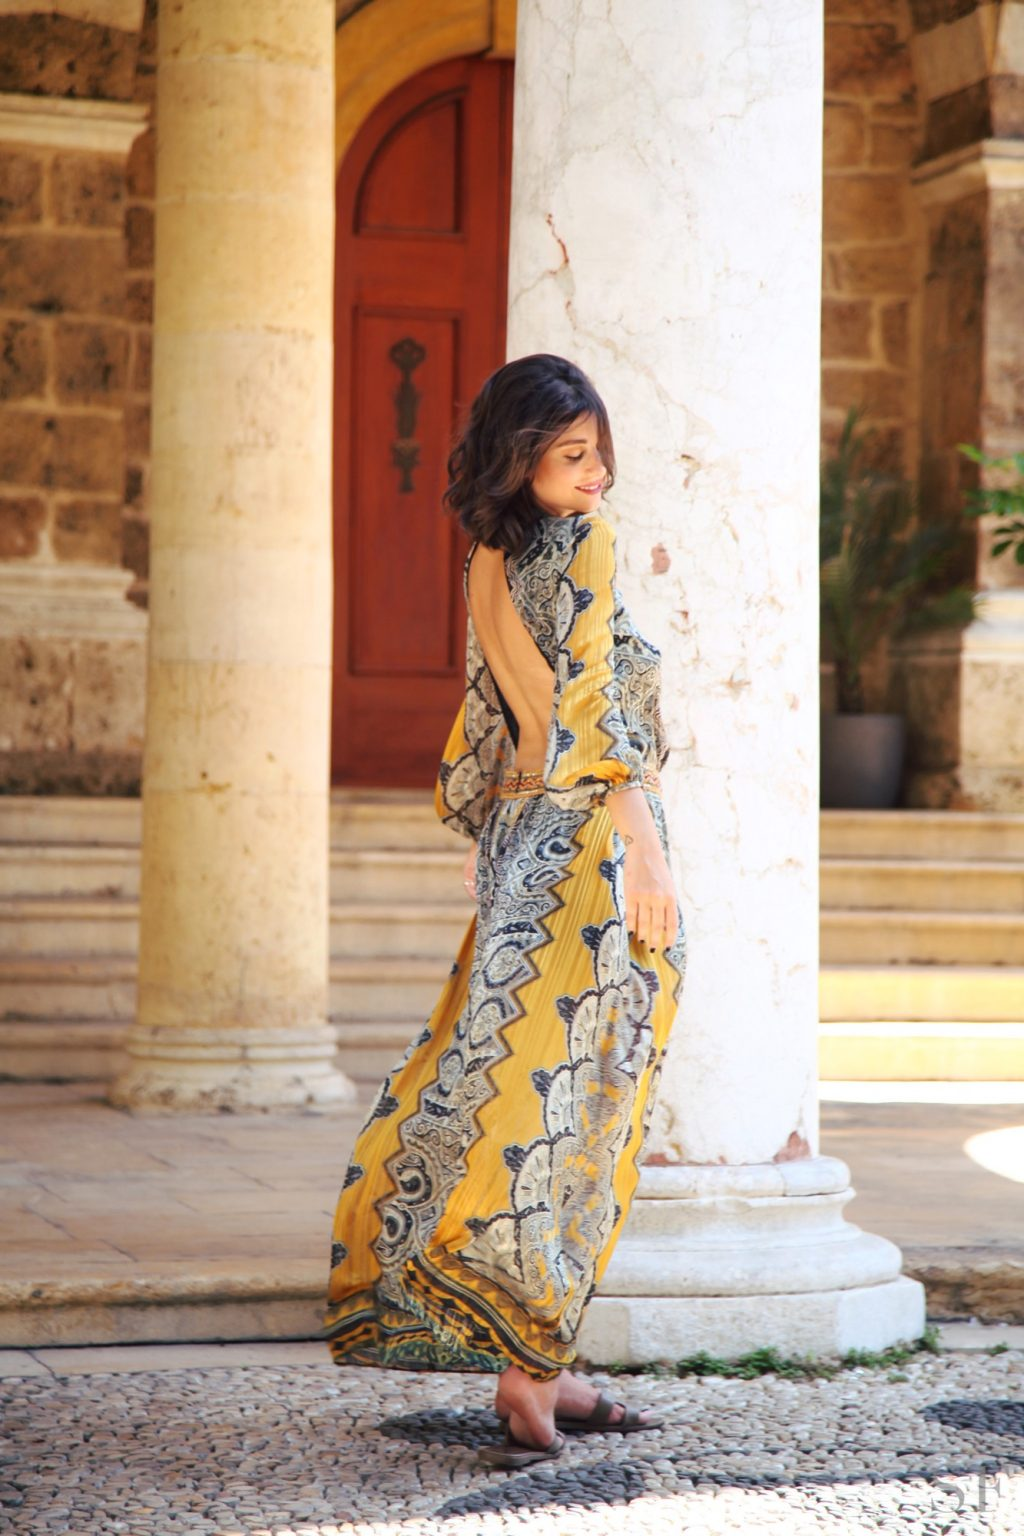 #BestofBeirut: 7 Days of Chic with Fashion Blogger Nour Arida